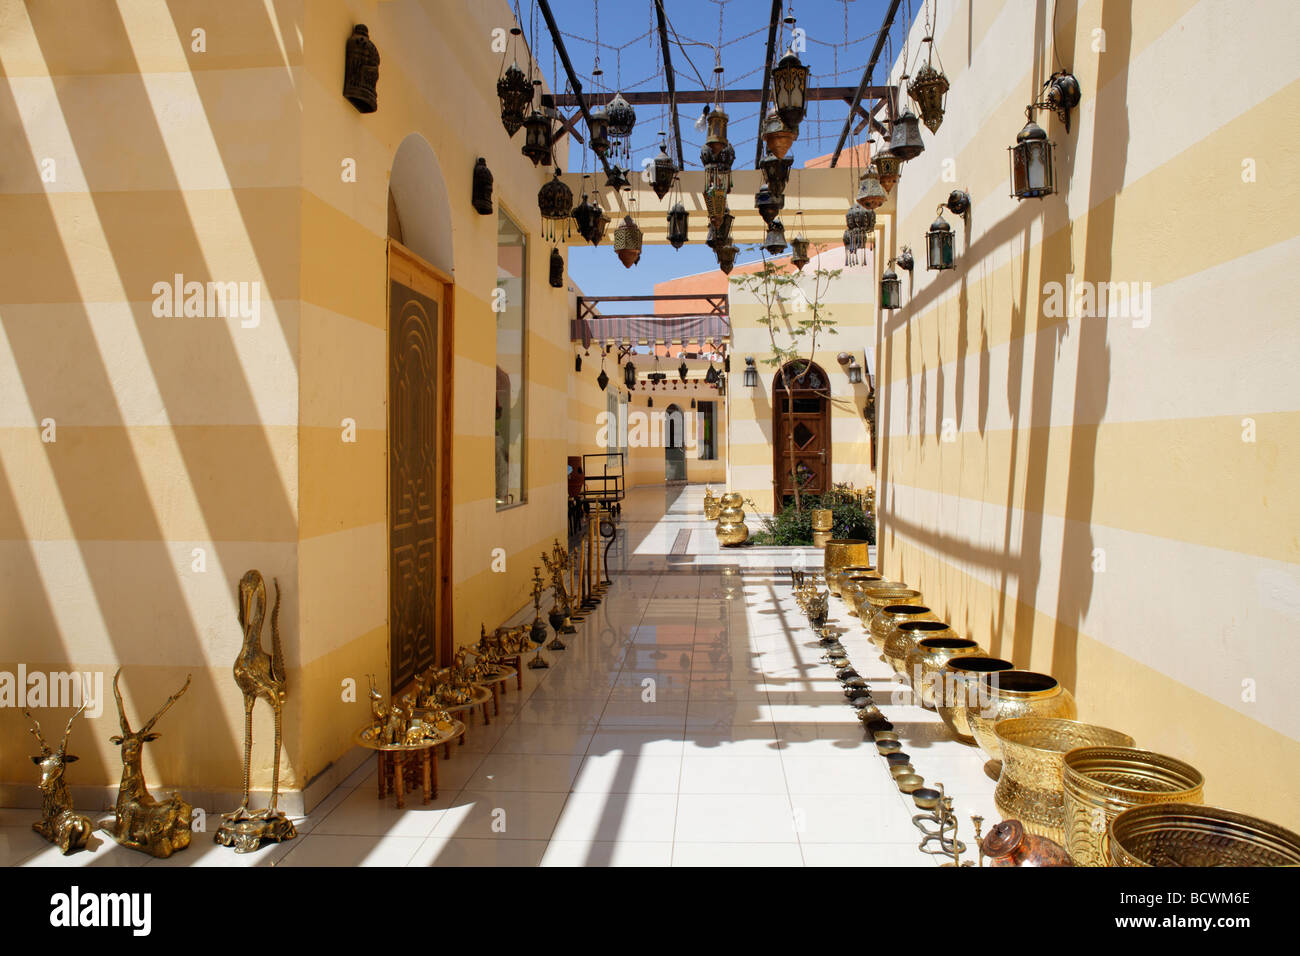 Brazen vessels, arcade, arch, traditional market, souk, Hurghada, Egypt, Red Sea, Africa - Stock Image